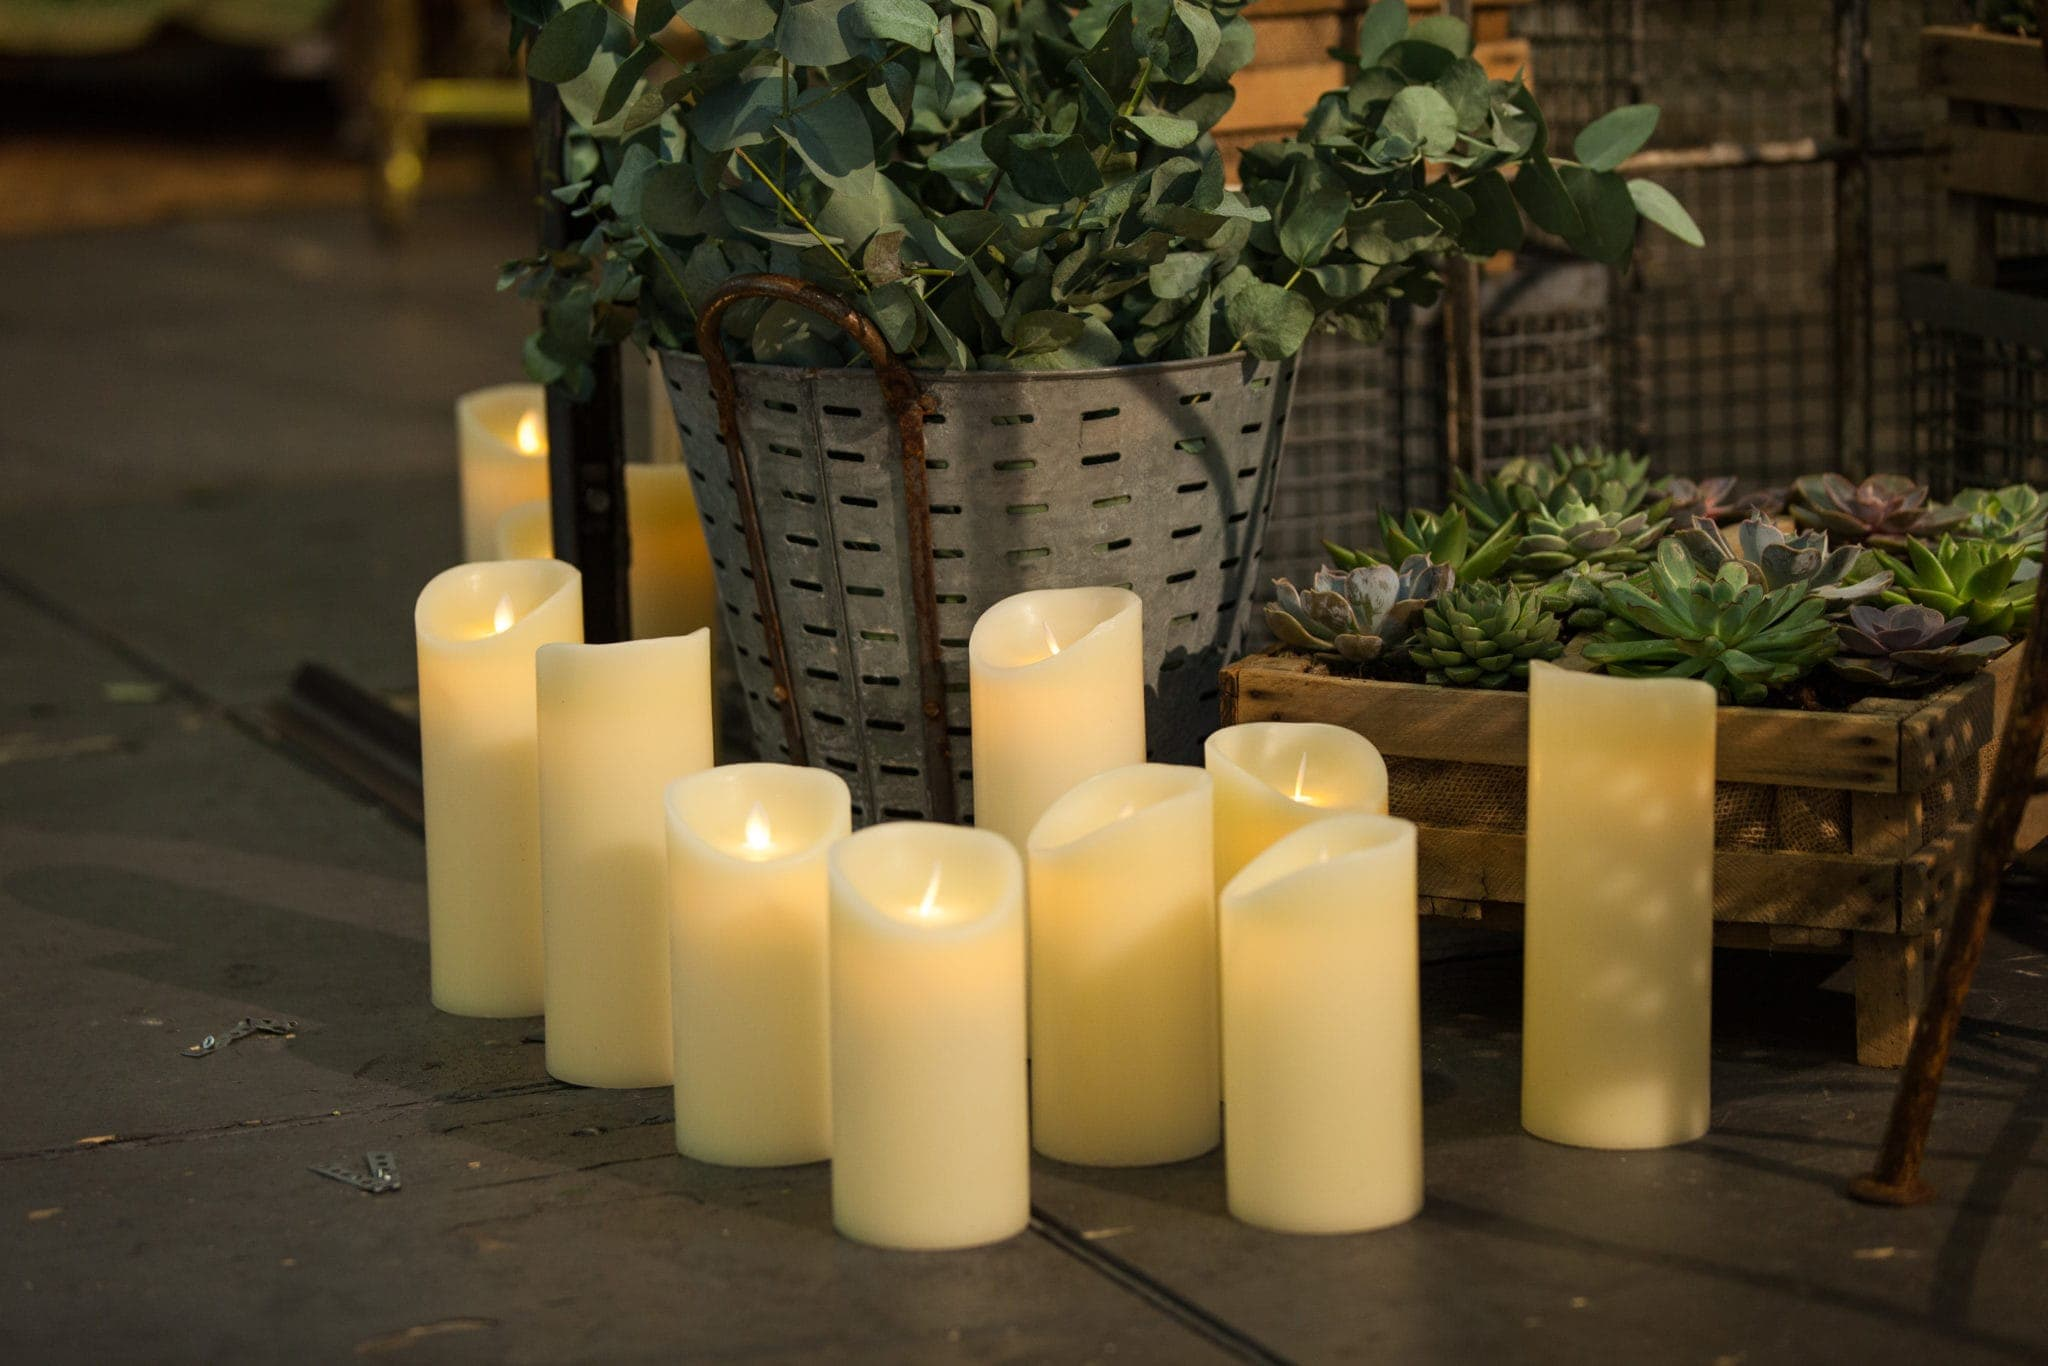 Lantern Ema L | Lantern for in- and outside use. Please ask for our LED real-wax candles separately.Also available in size M. | gotvintage Rental & Event Design